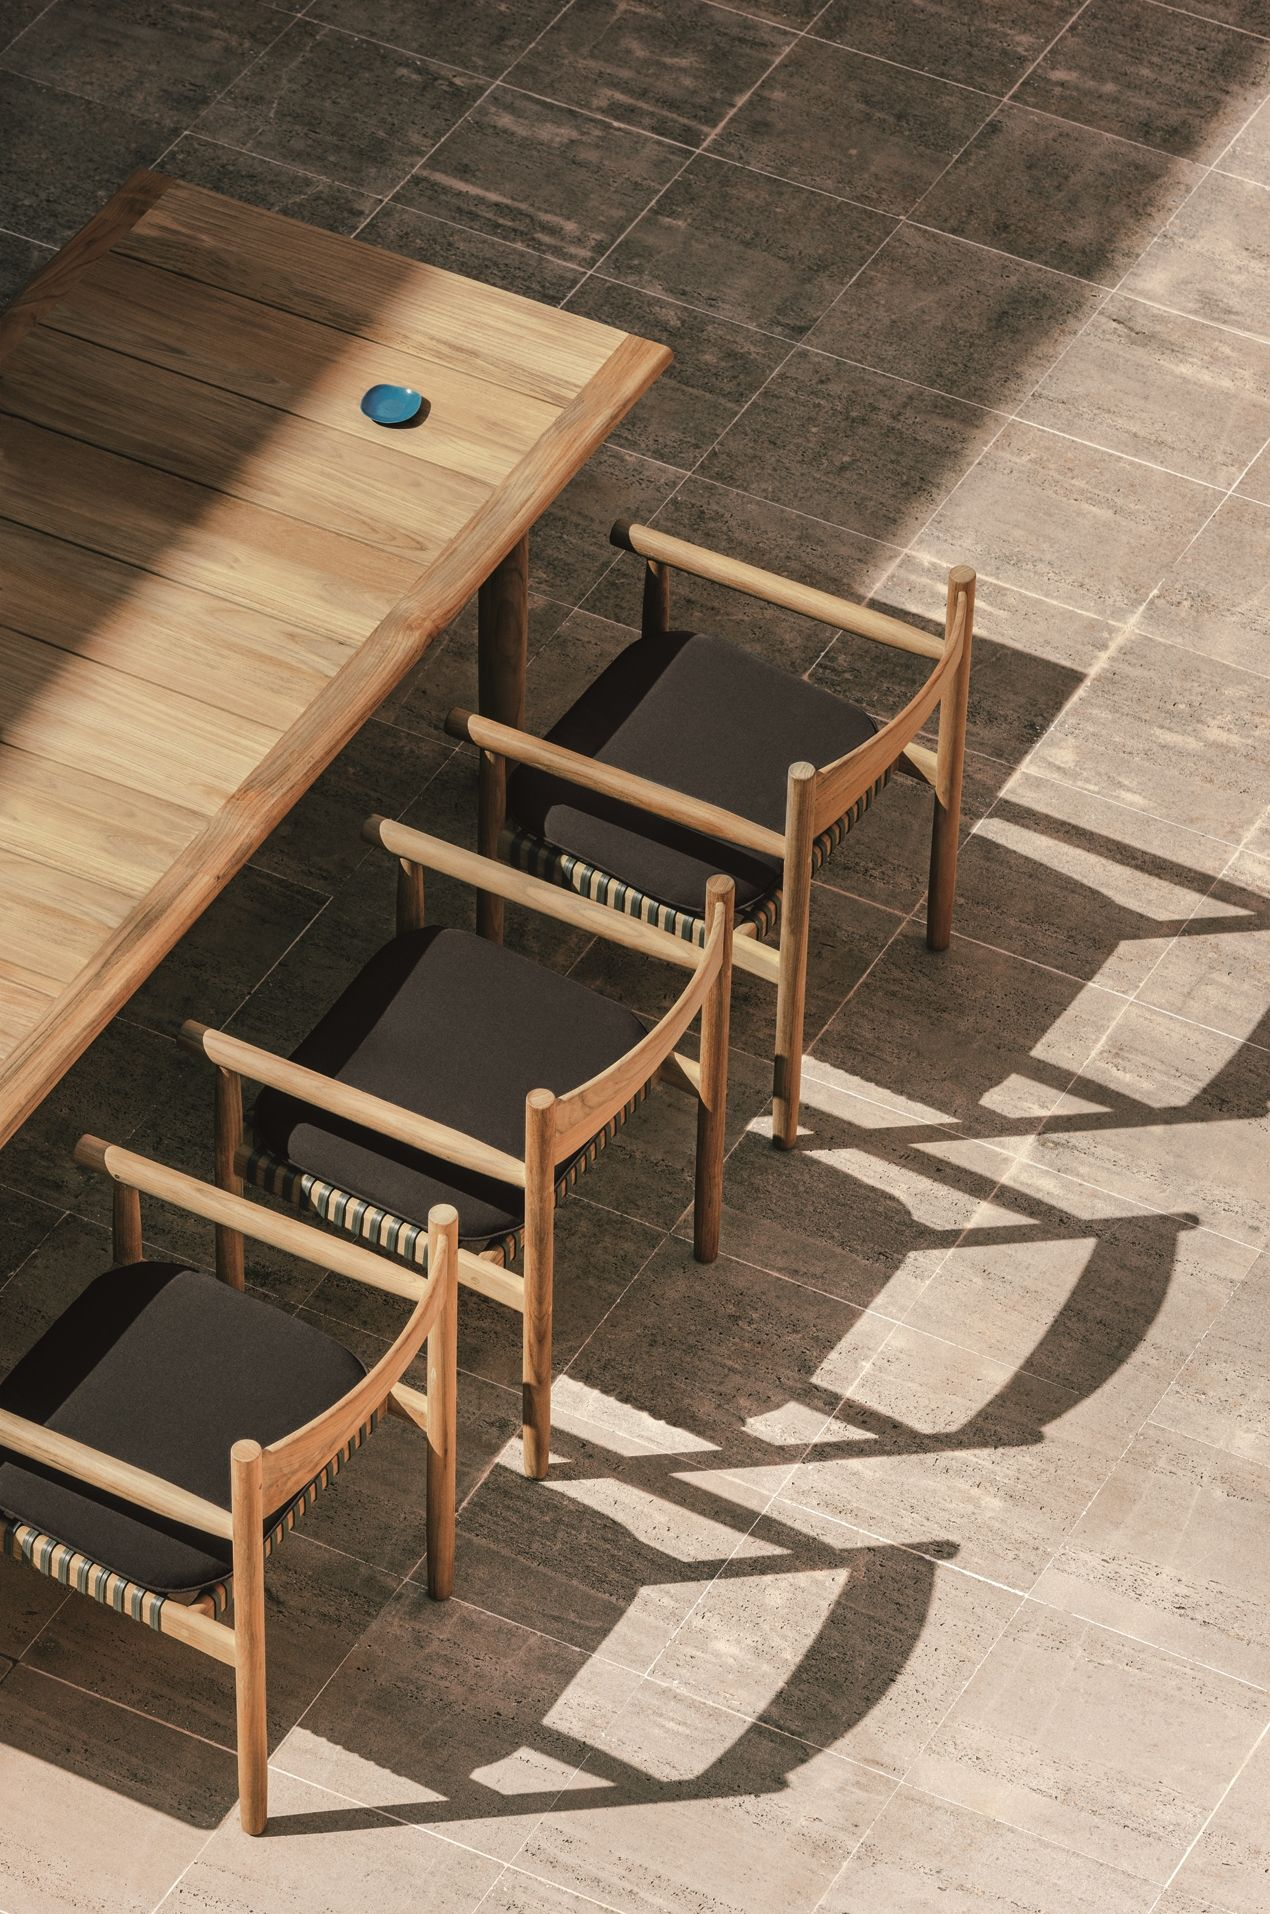 DEDON Tibbo dining table and chairs | DEDON | Pinterest